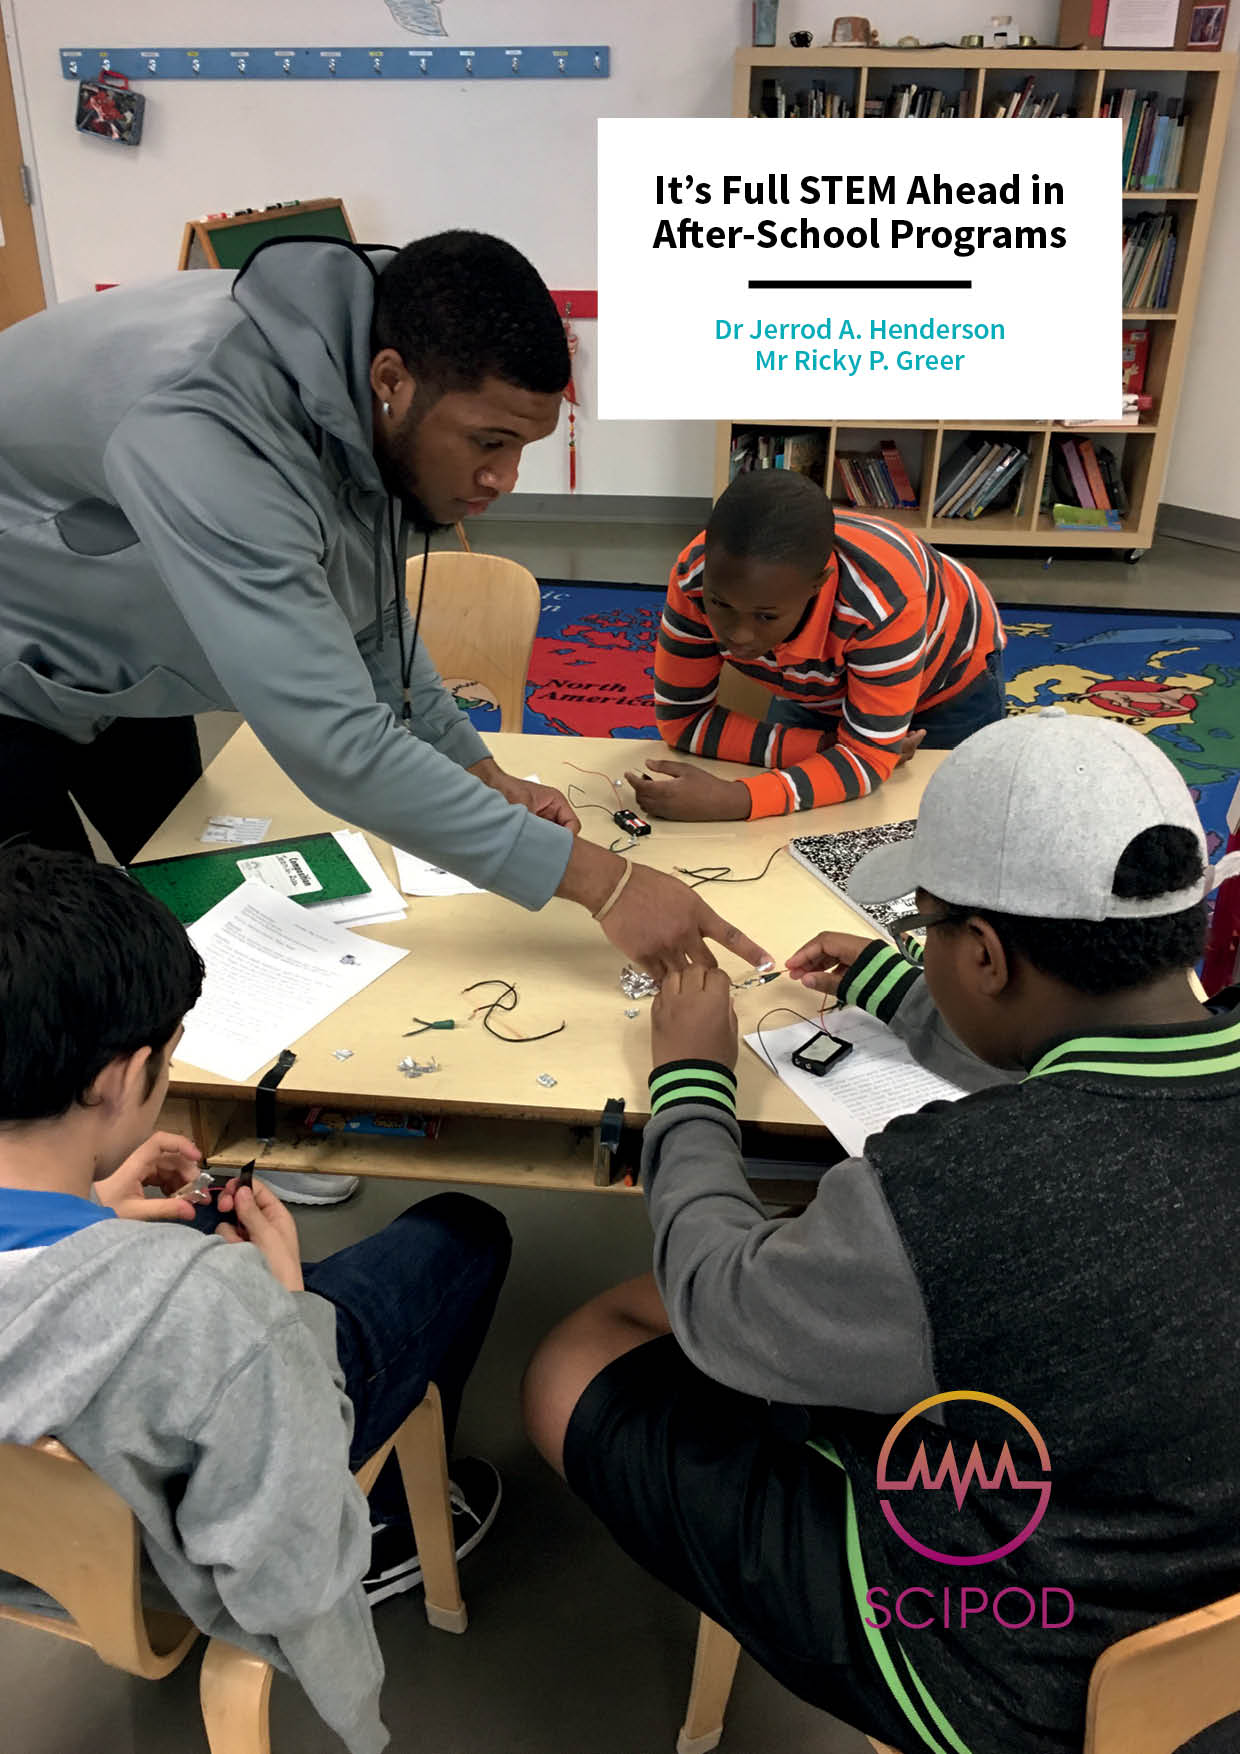 It's Full STEM Ahead in After-School Programs – Dr Jerrod A. Henderson and Mr Ricky P. Greer, University of Houston